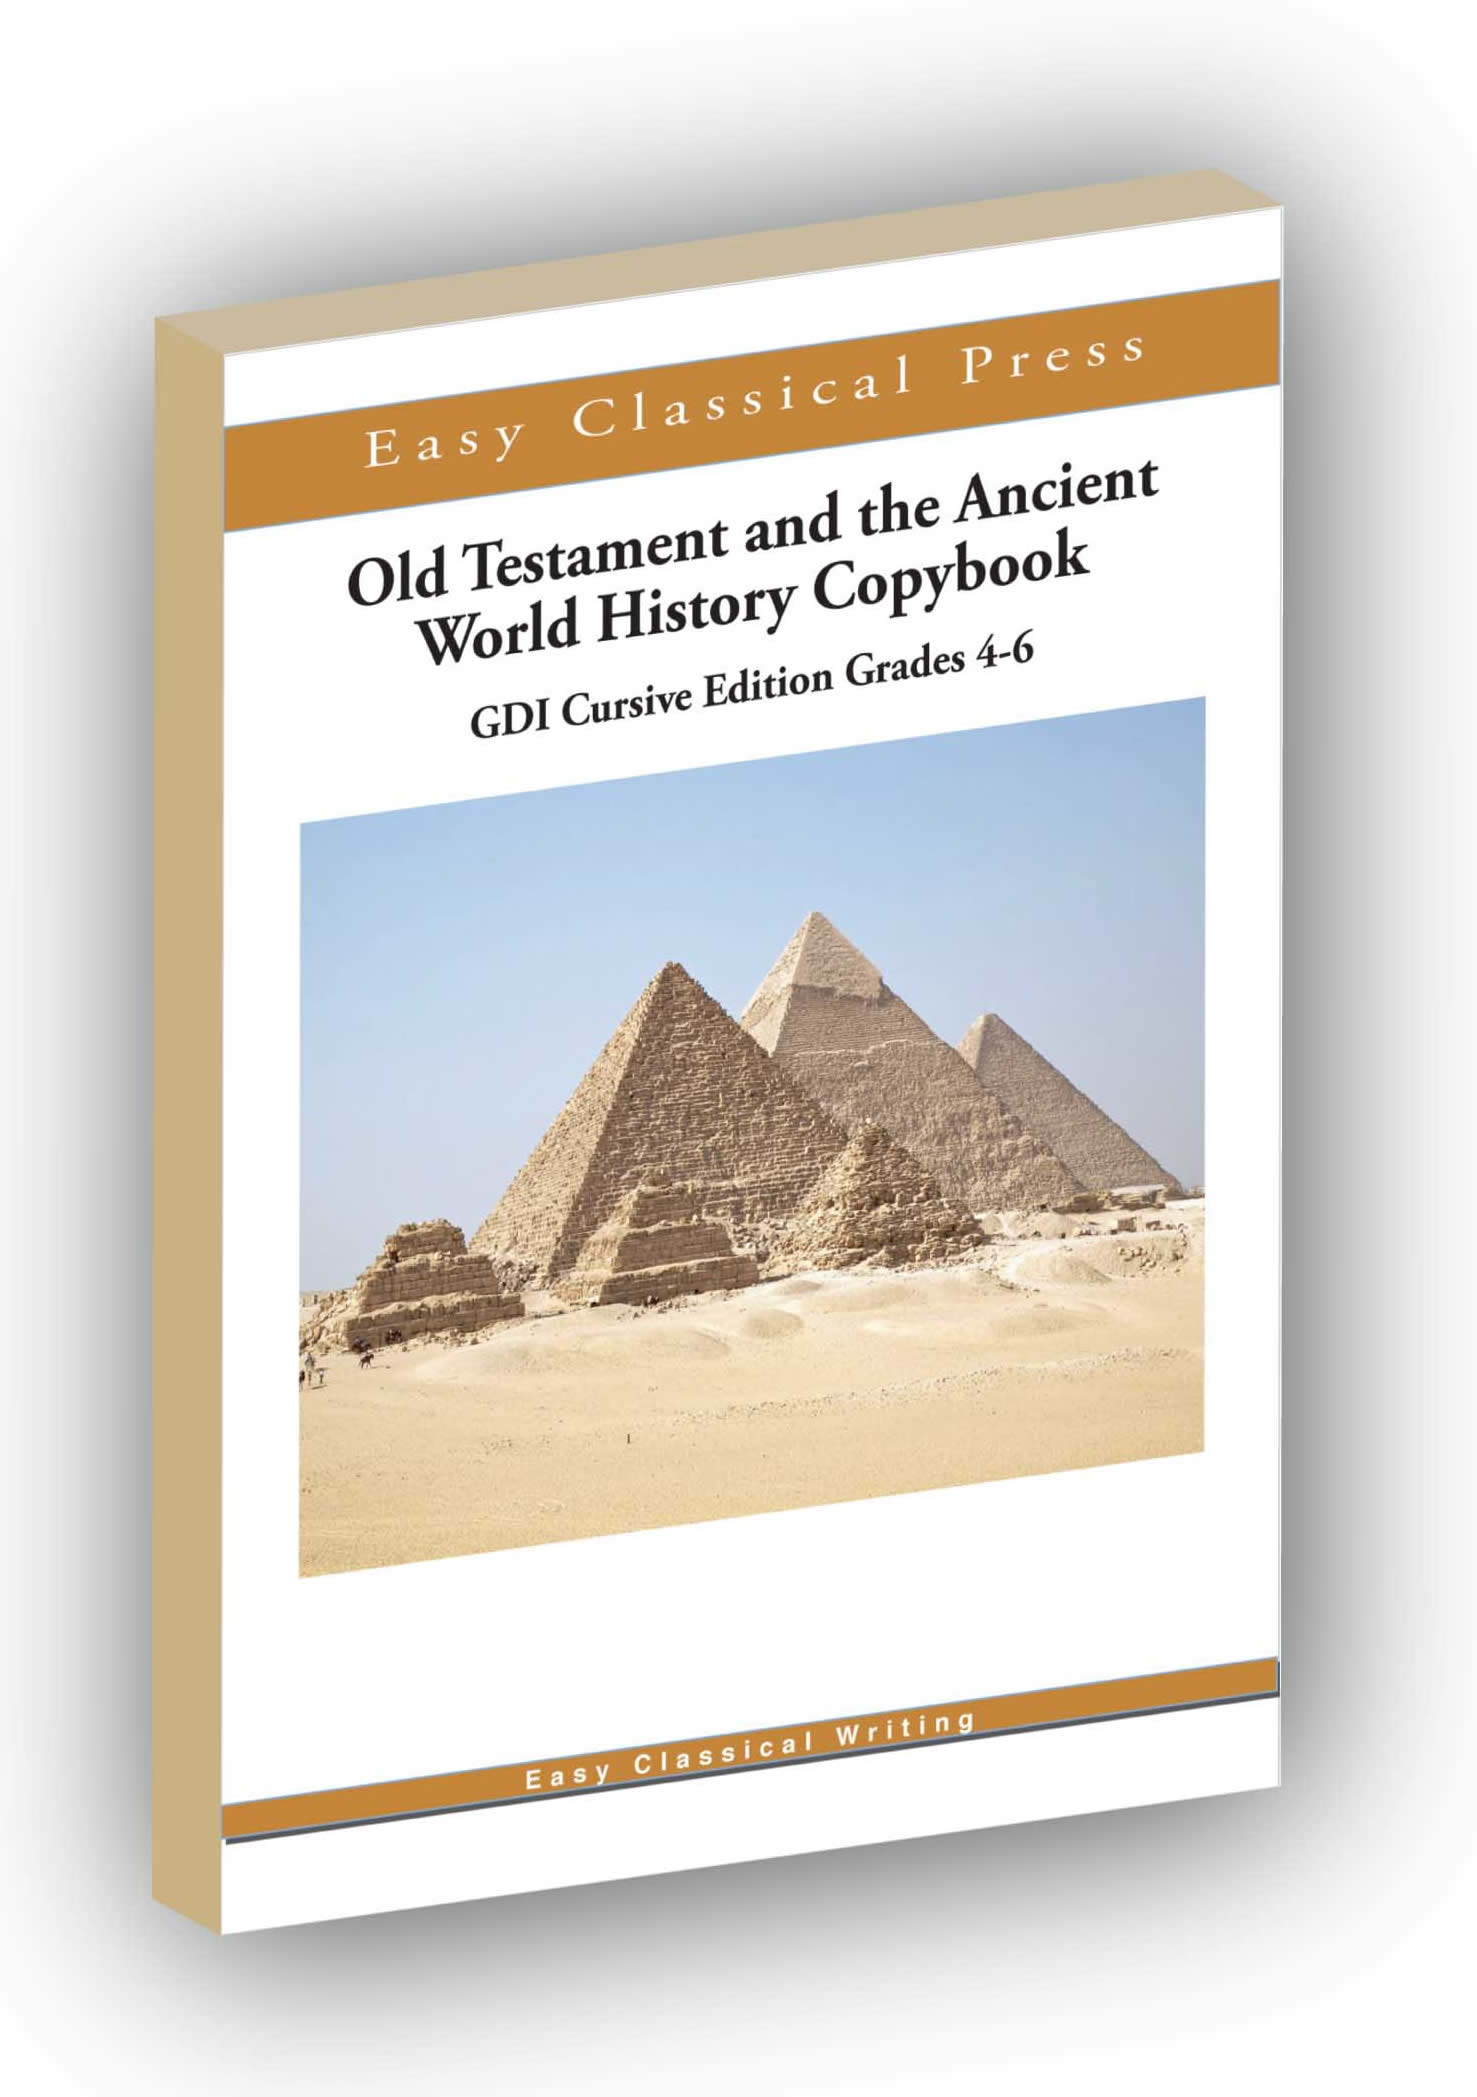 OT and the Ancient World History Copybook 4-6